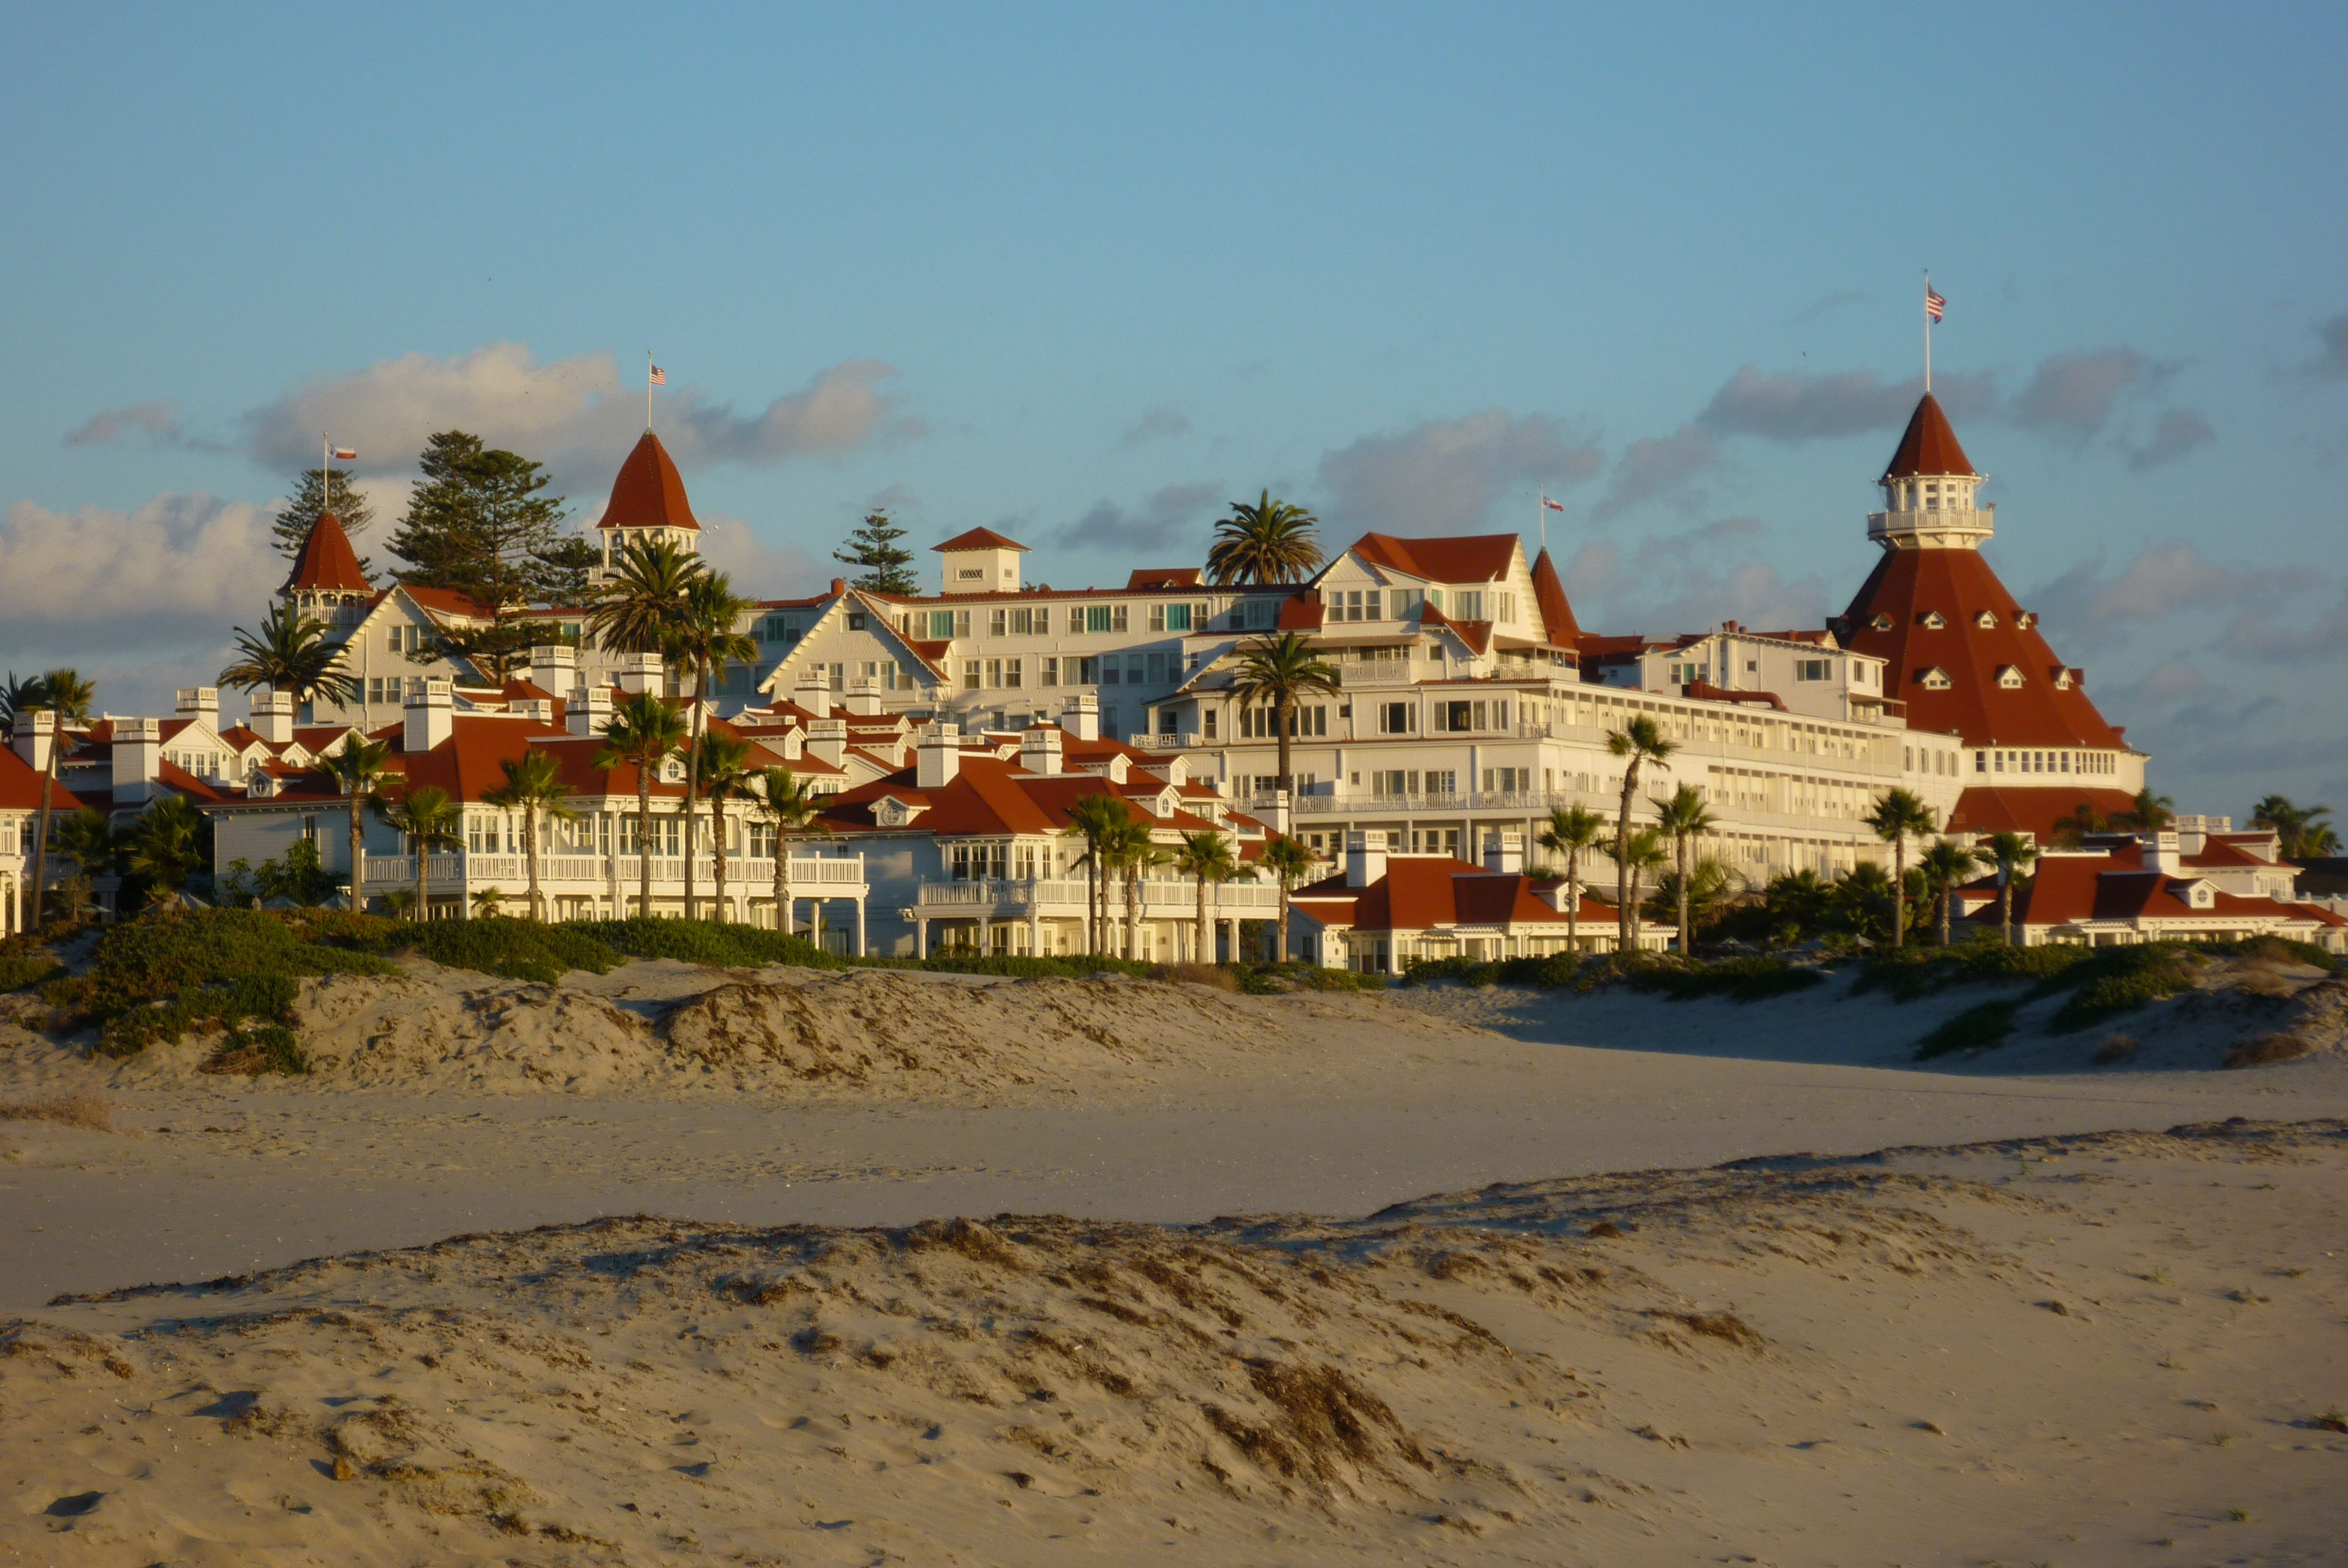 Find This Pin And More On Hotel Del Coronado By Jkslminer